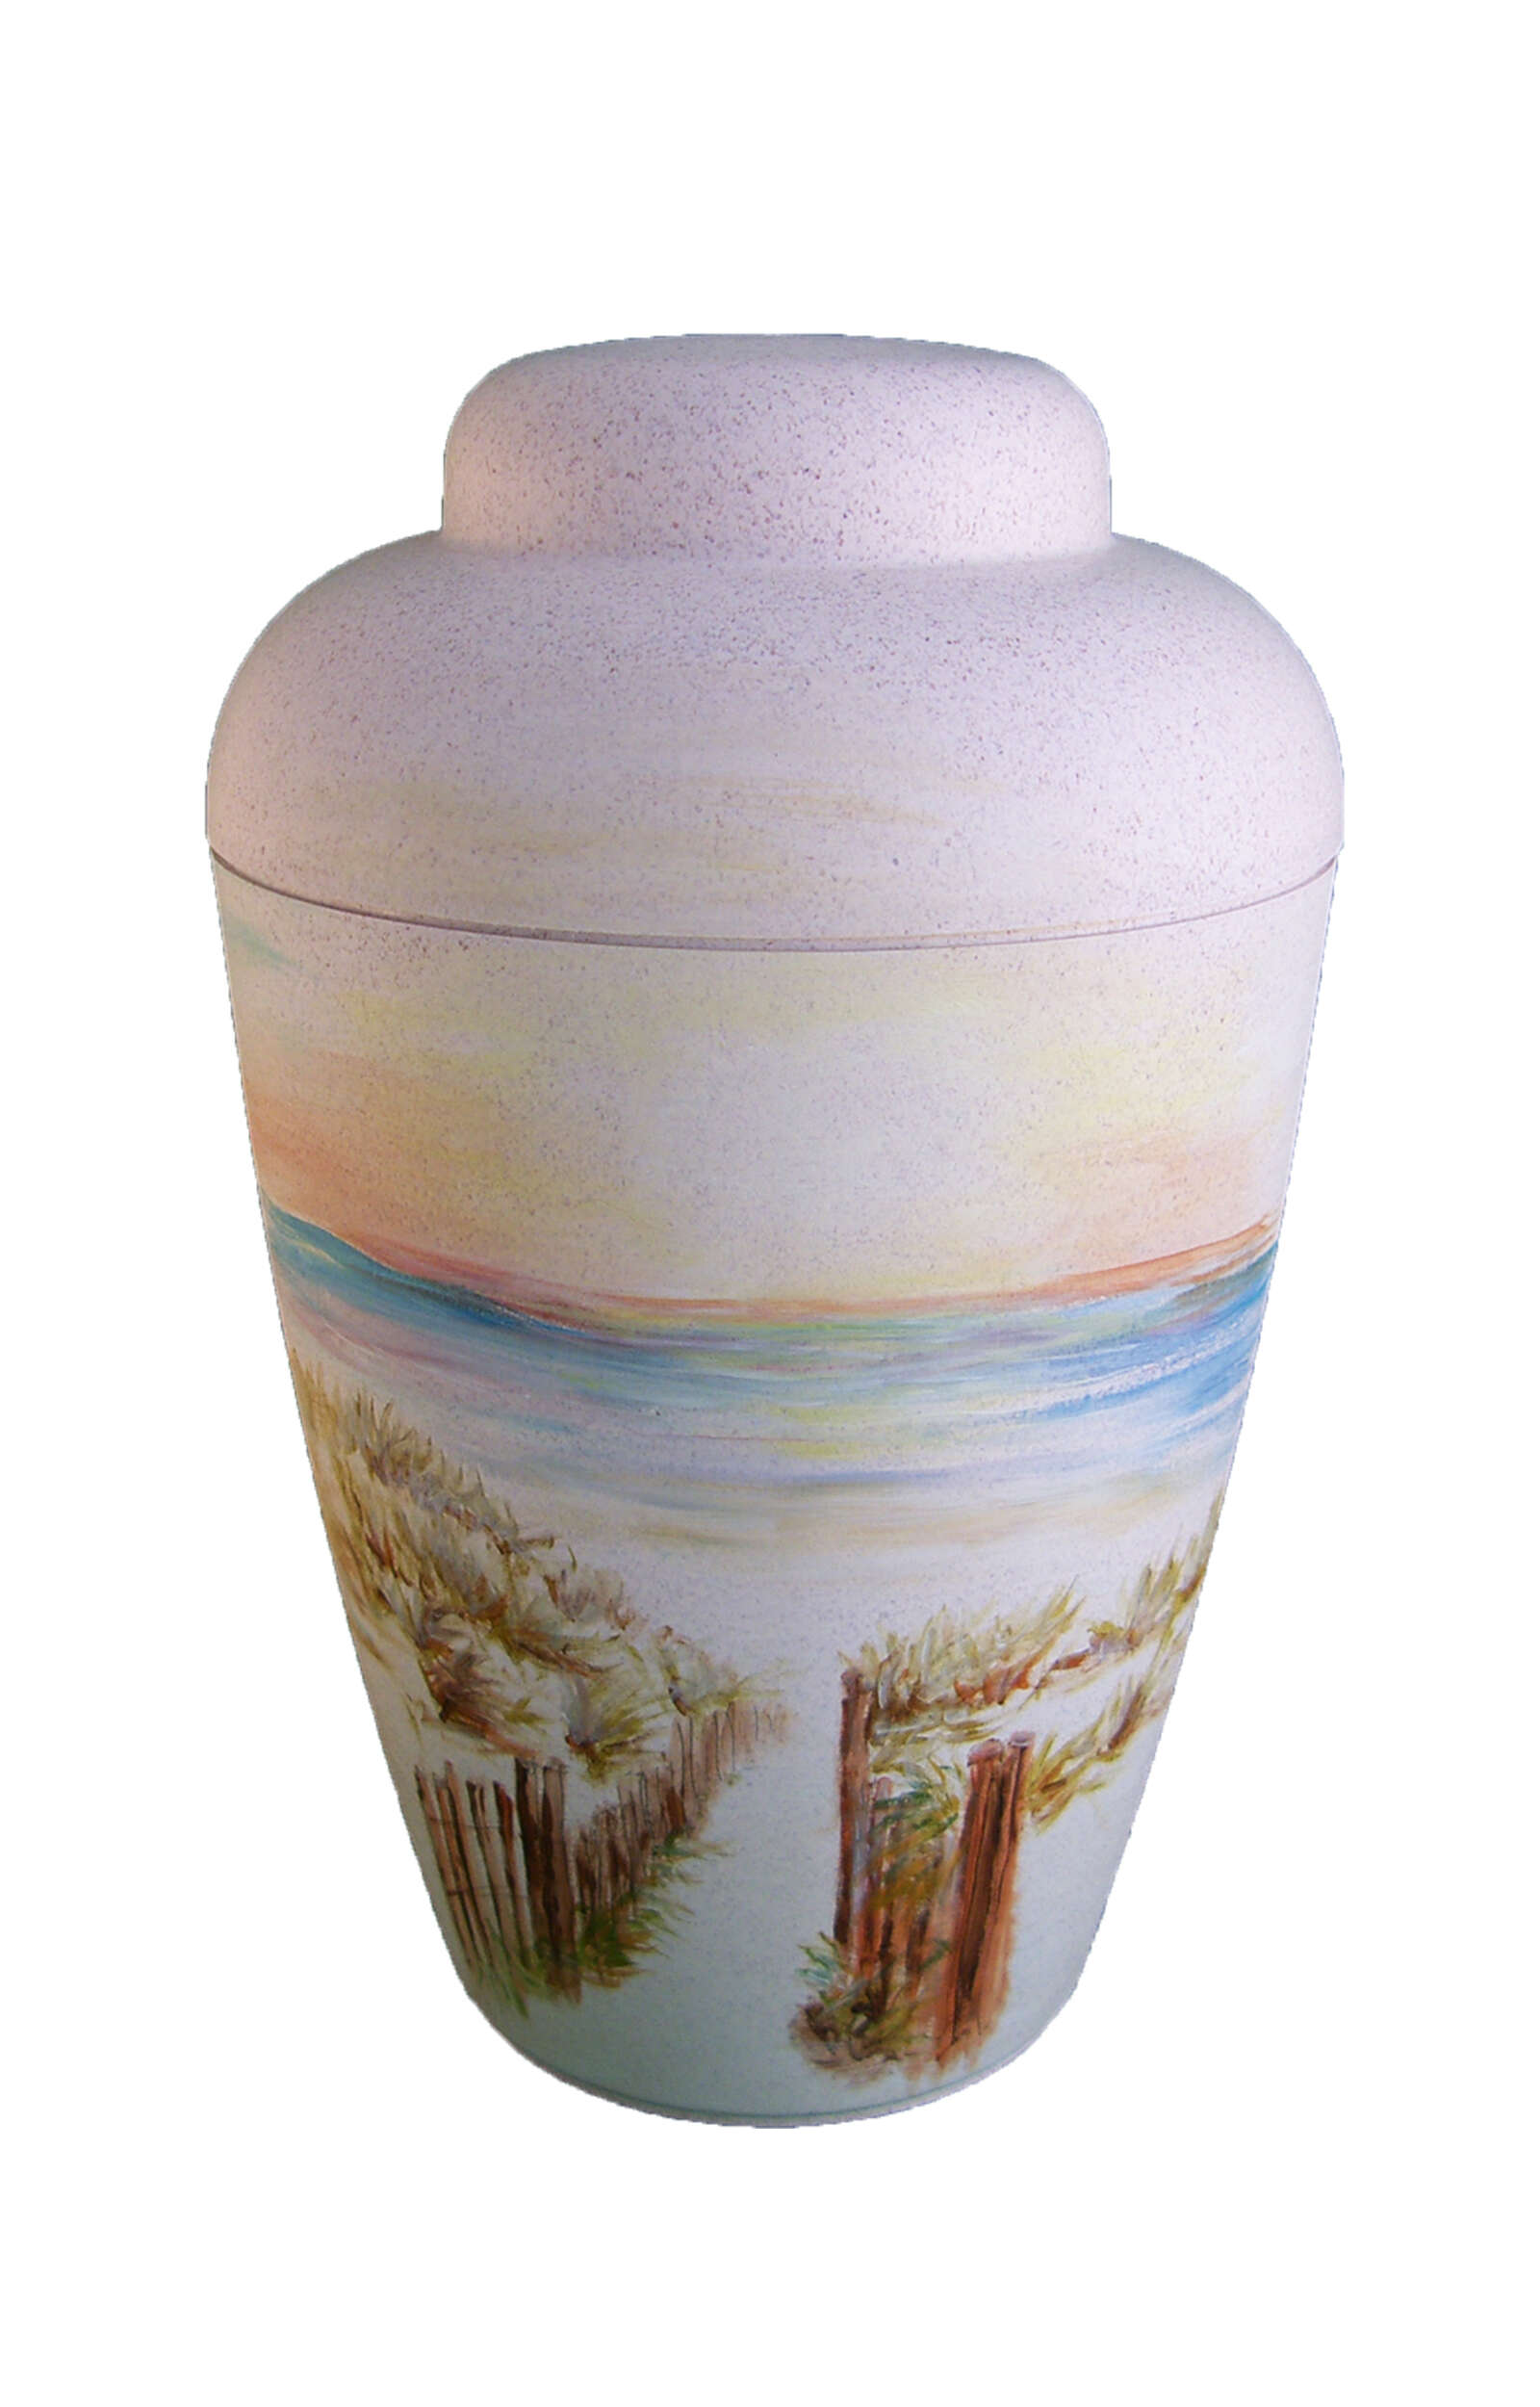 en BW1501 beach food path sea sunset biodigradable urn